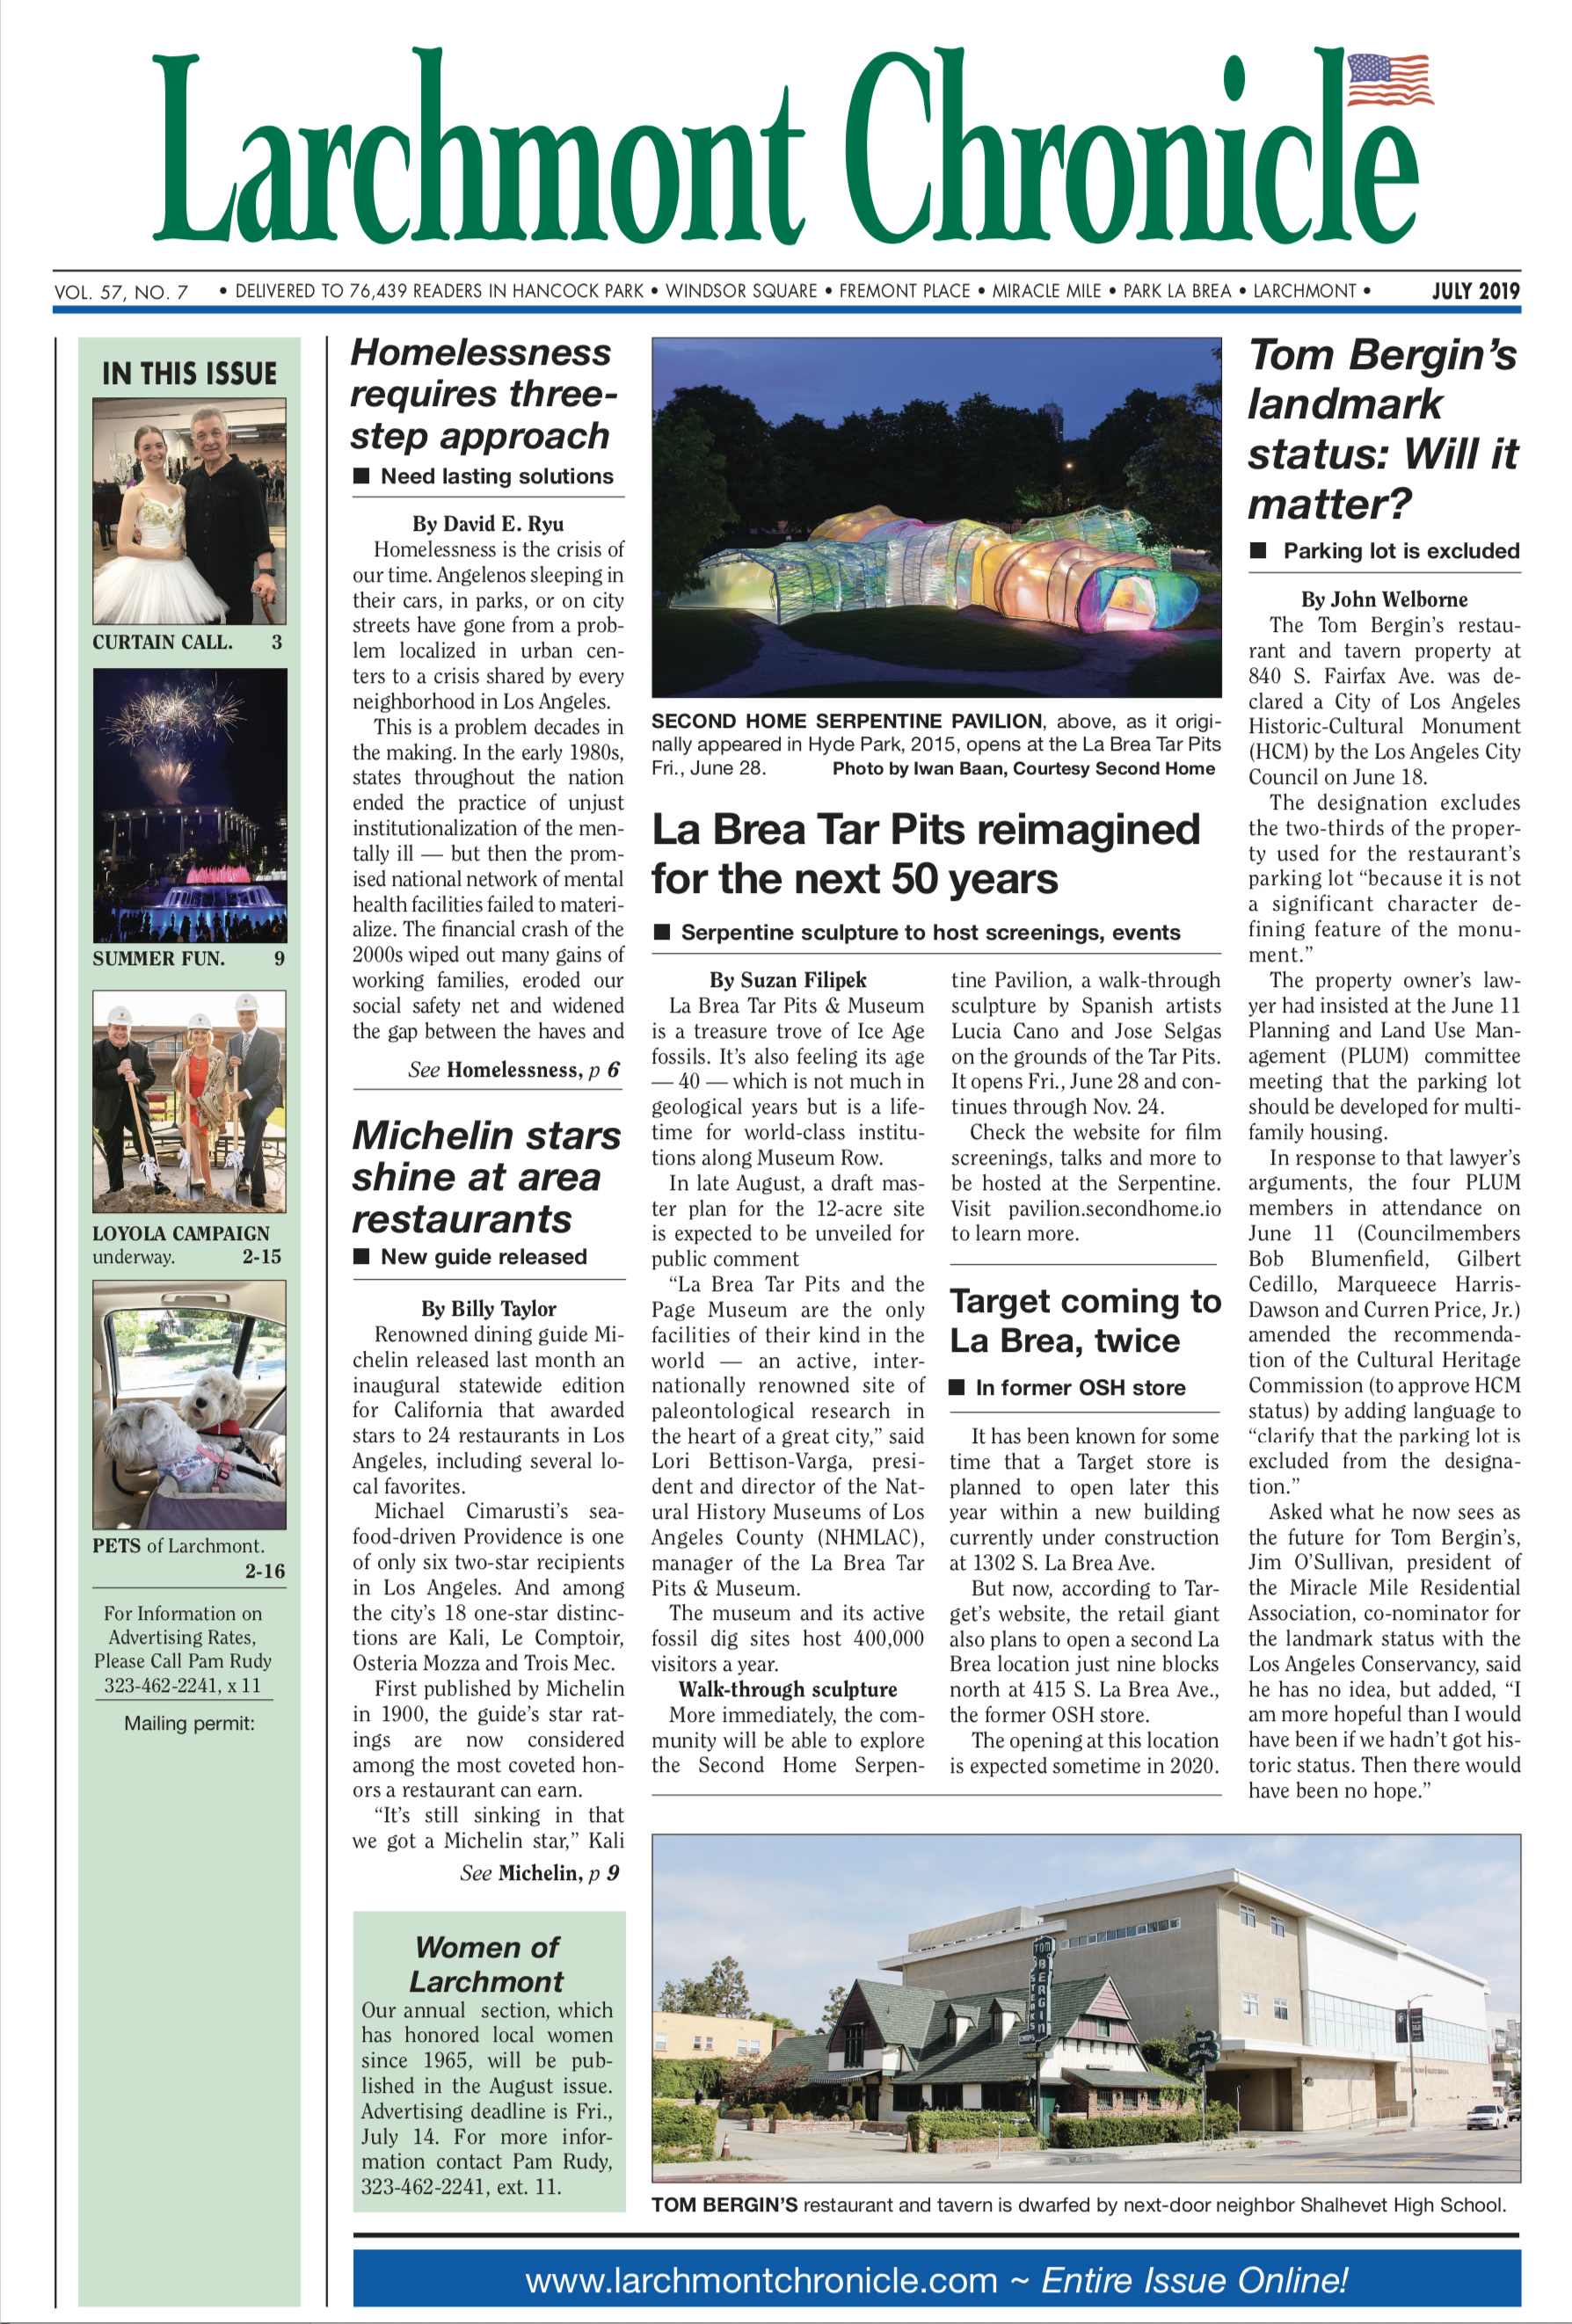 Larchmont Chronicle July 2019 full issue